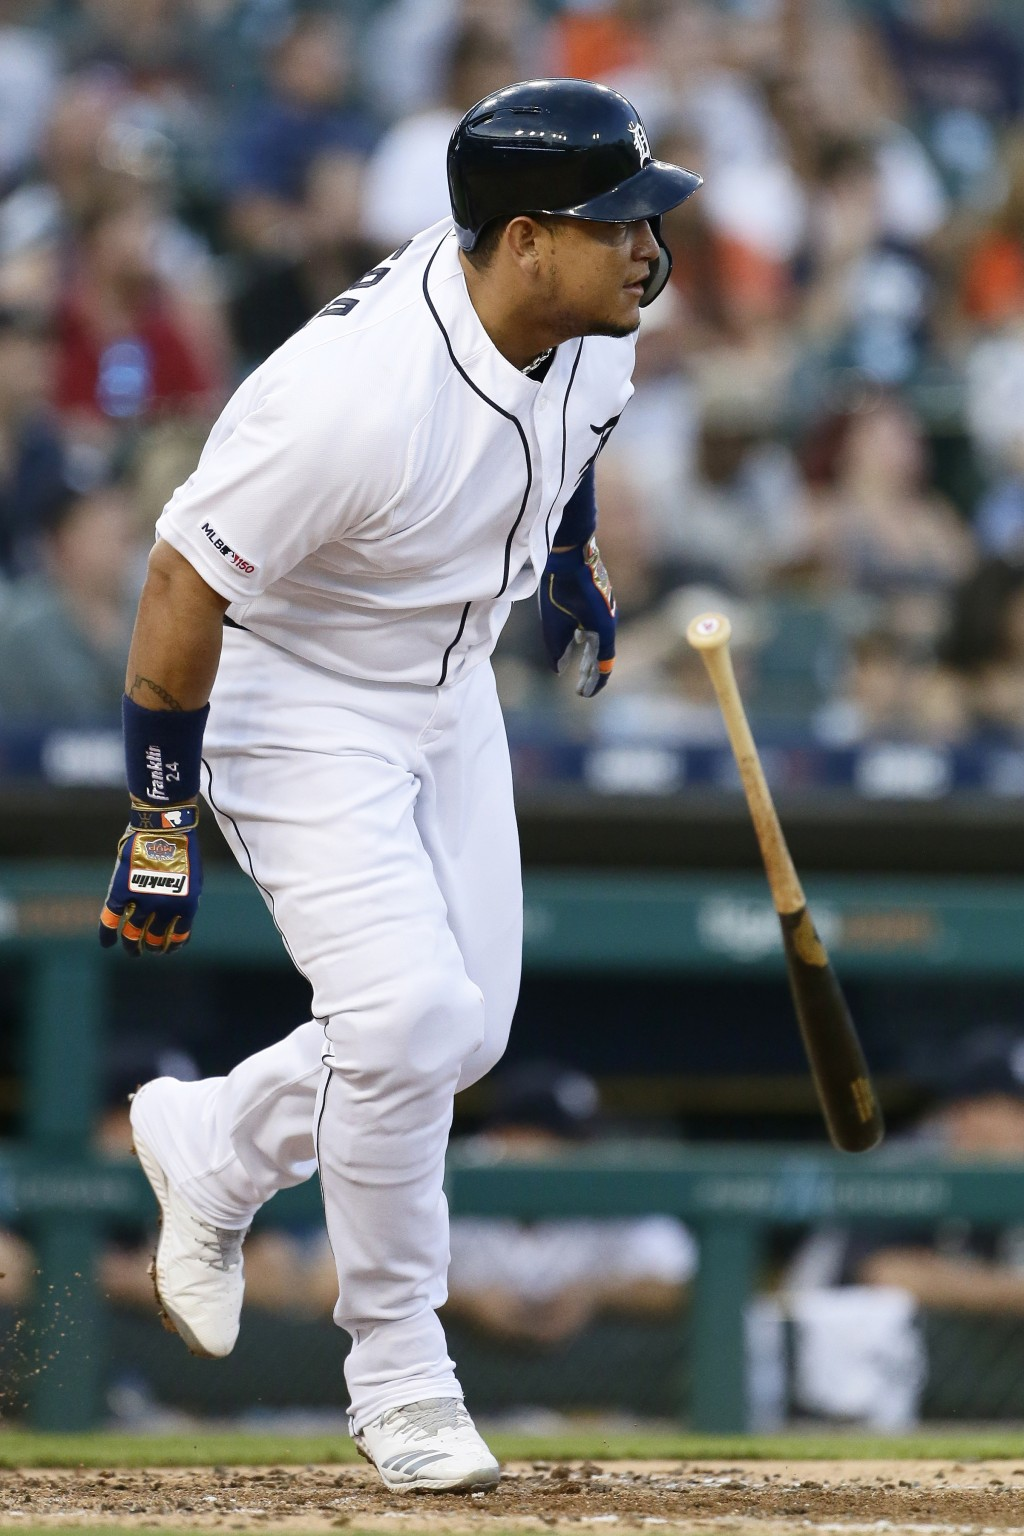 Detroit Tigers' Miguel Cabrera starts to run after hitting a single against the Washington Nationals during the fifth inning of a baseball game Friday...